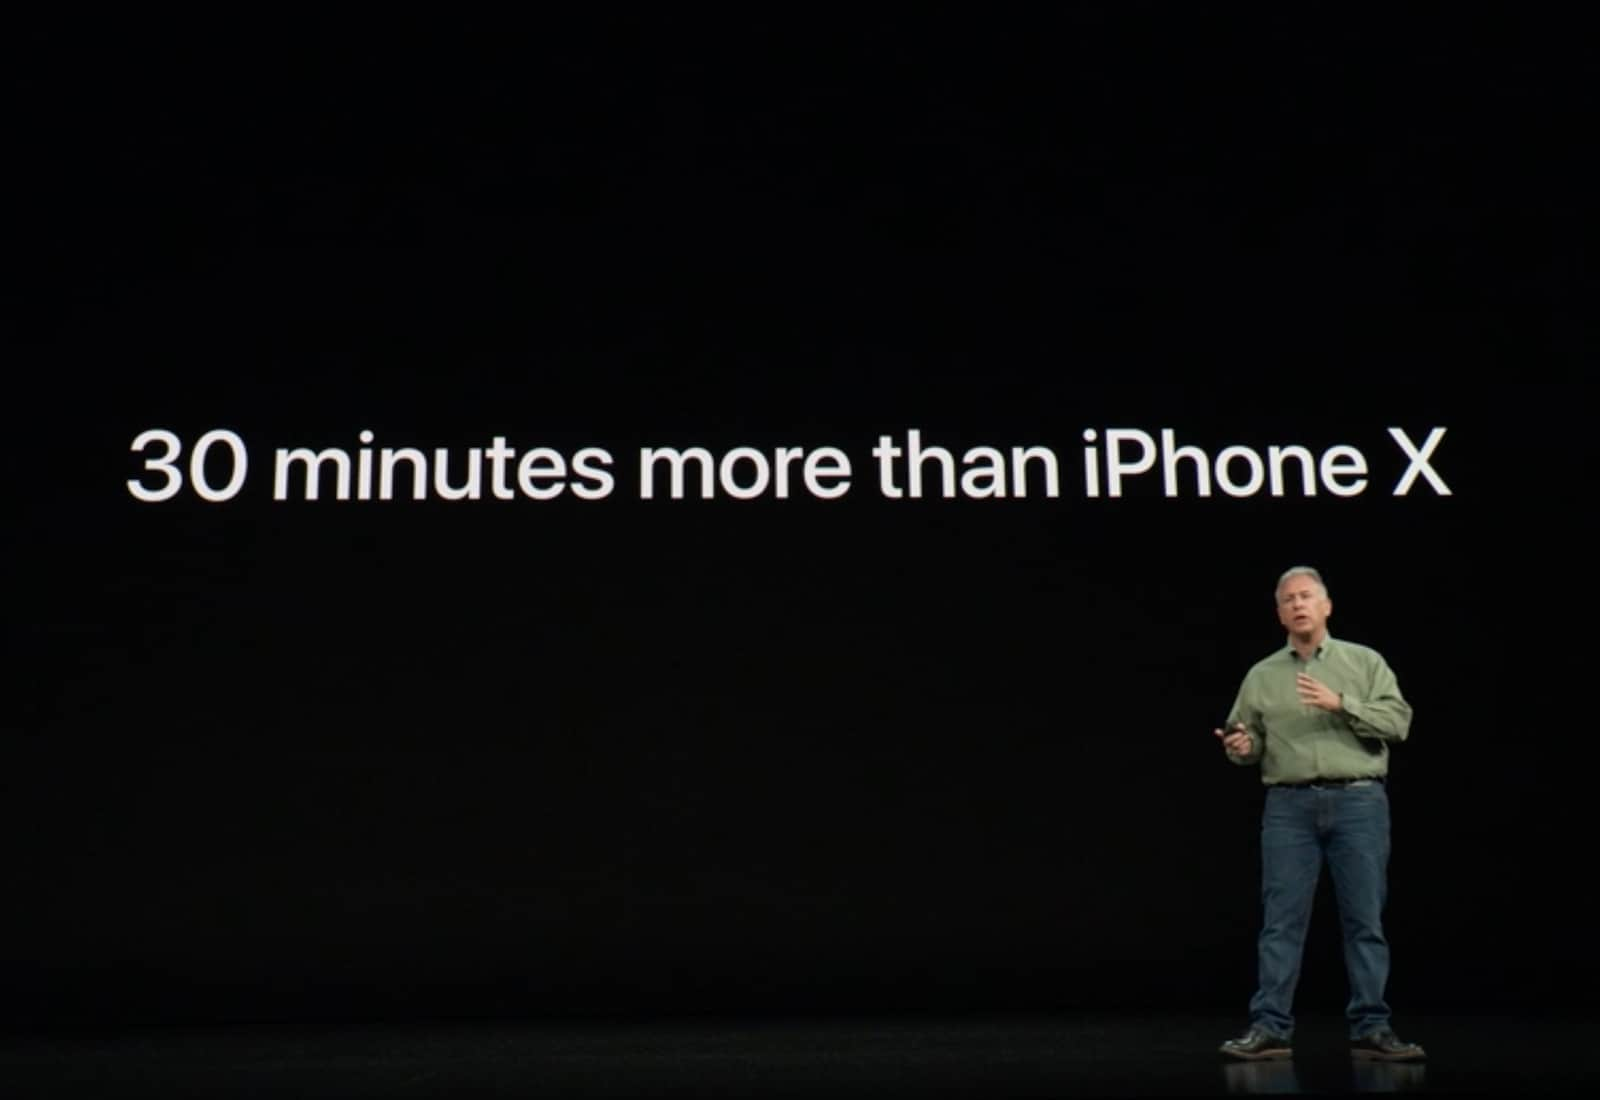 iPhone keynote